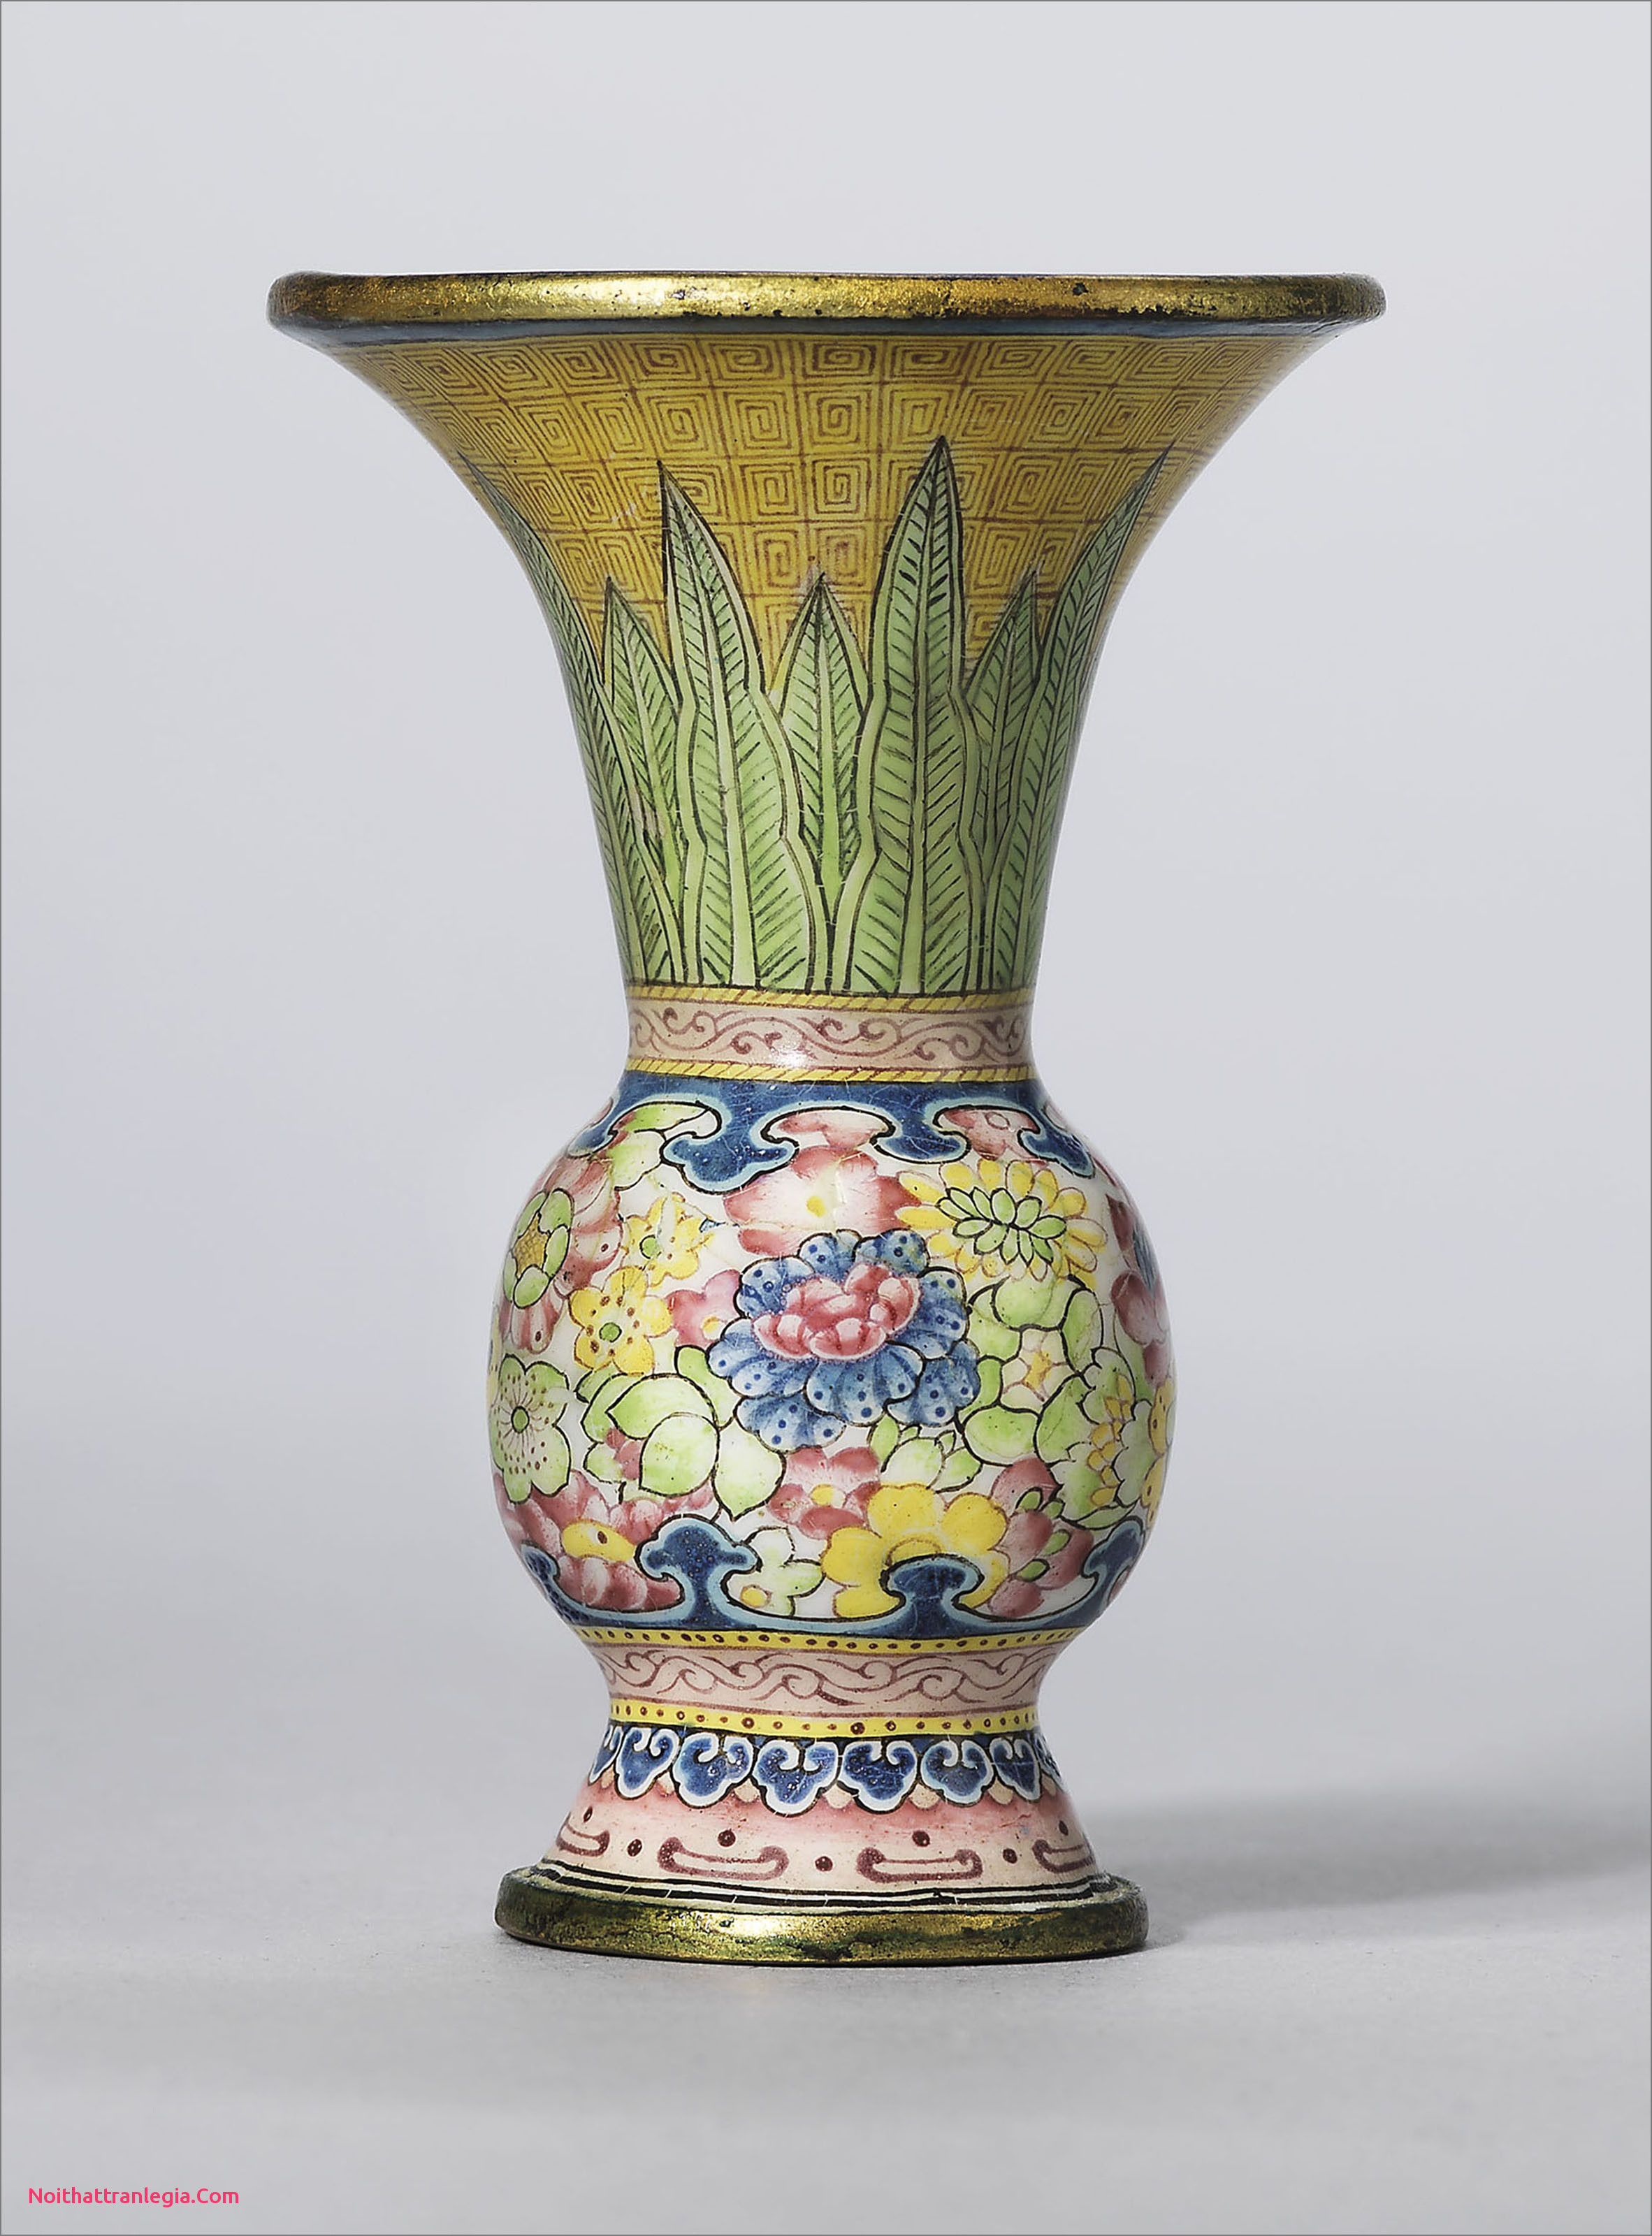 qing dynasty vase of 20 chinese antique vase noithattranlegia vases design throughout a rare painted enamel gu shaped miniature vase qianlong four character mark in